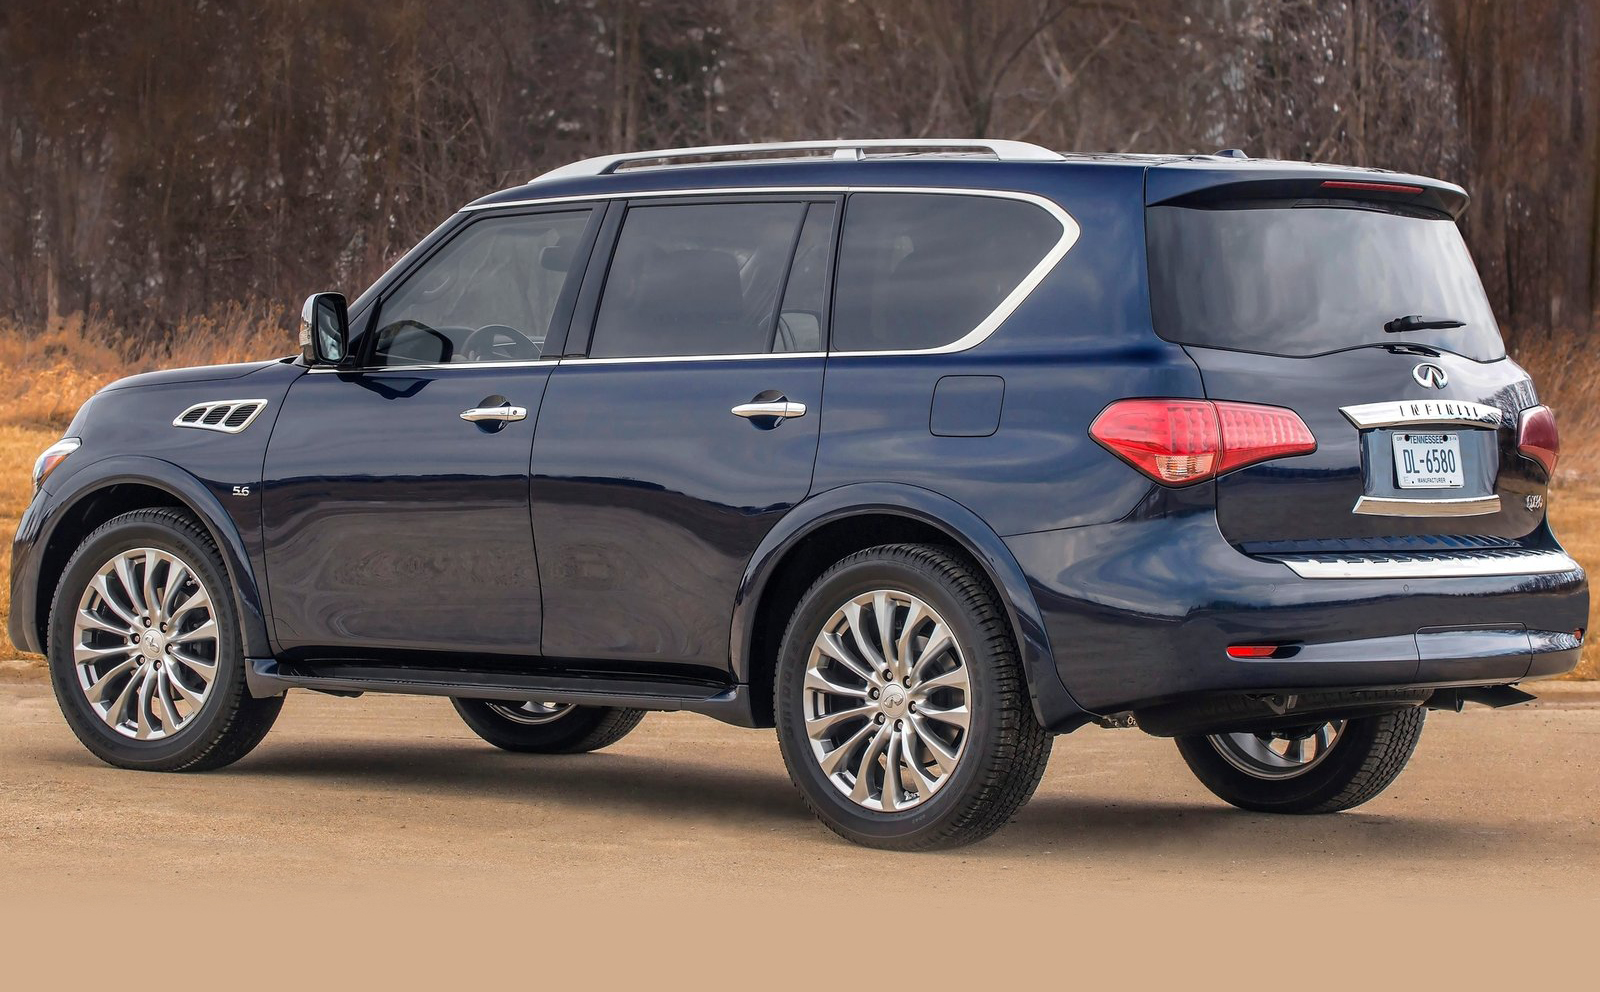 2016 infiniti qx80 pricing and specifications photos 1 of 8. Black Bedroom Furniture Sets. Home Design Ideas